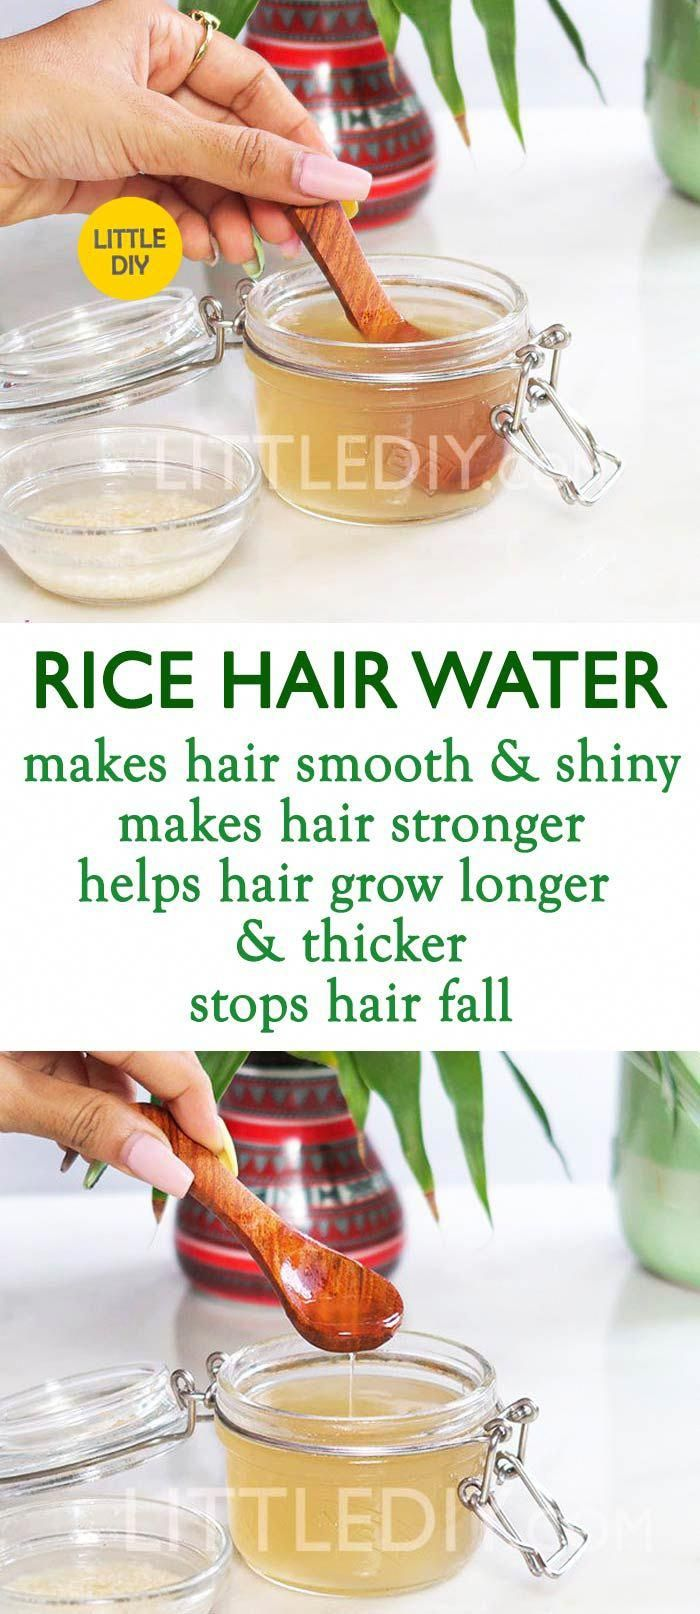 hair growth grow dullhairtreatmont help